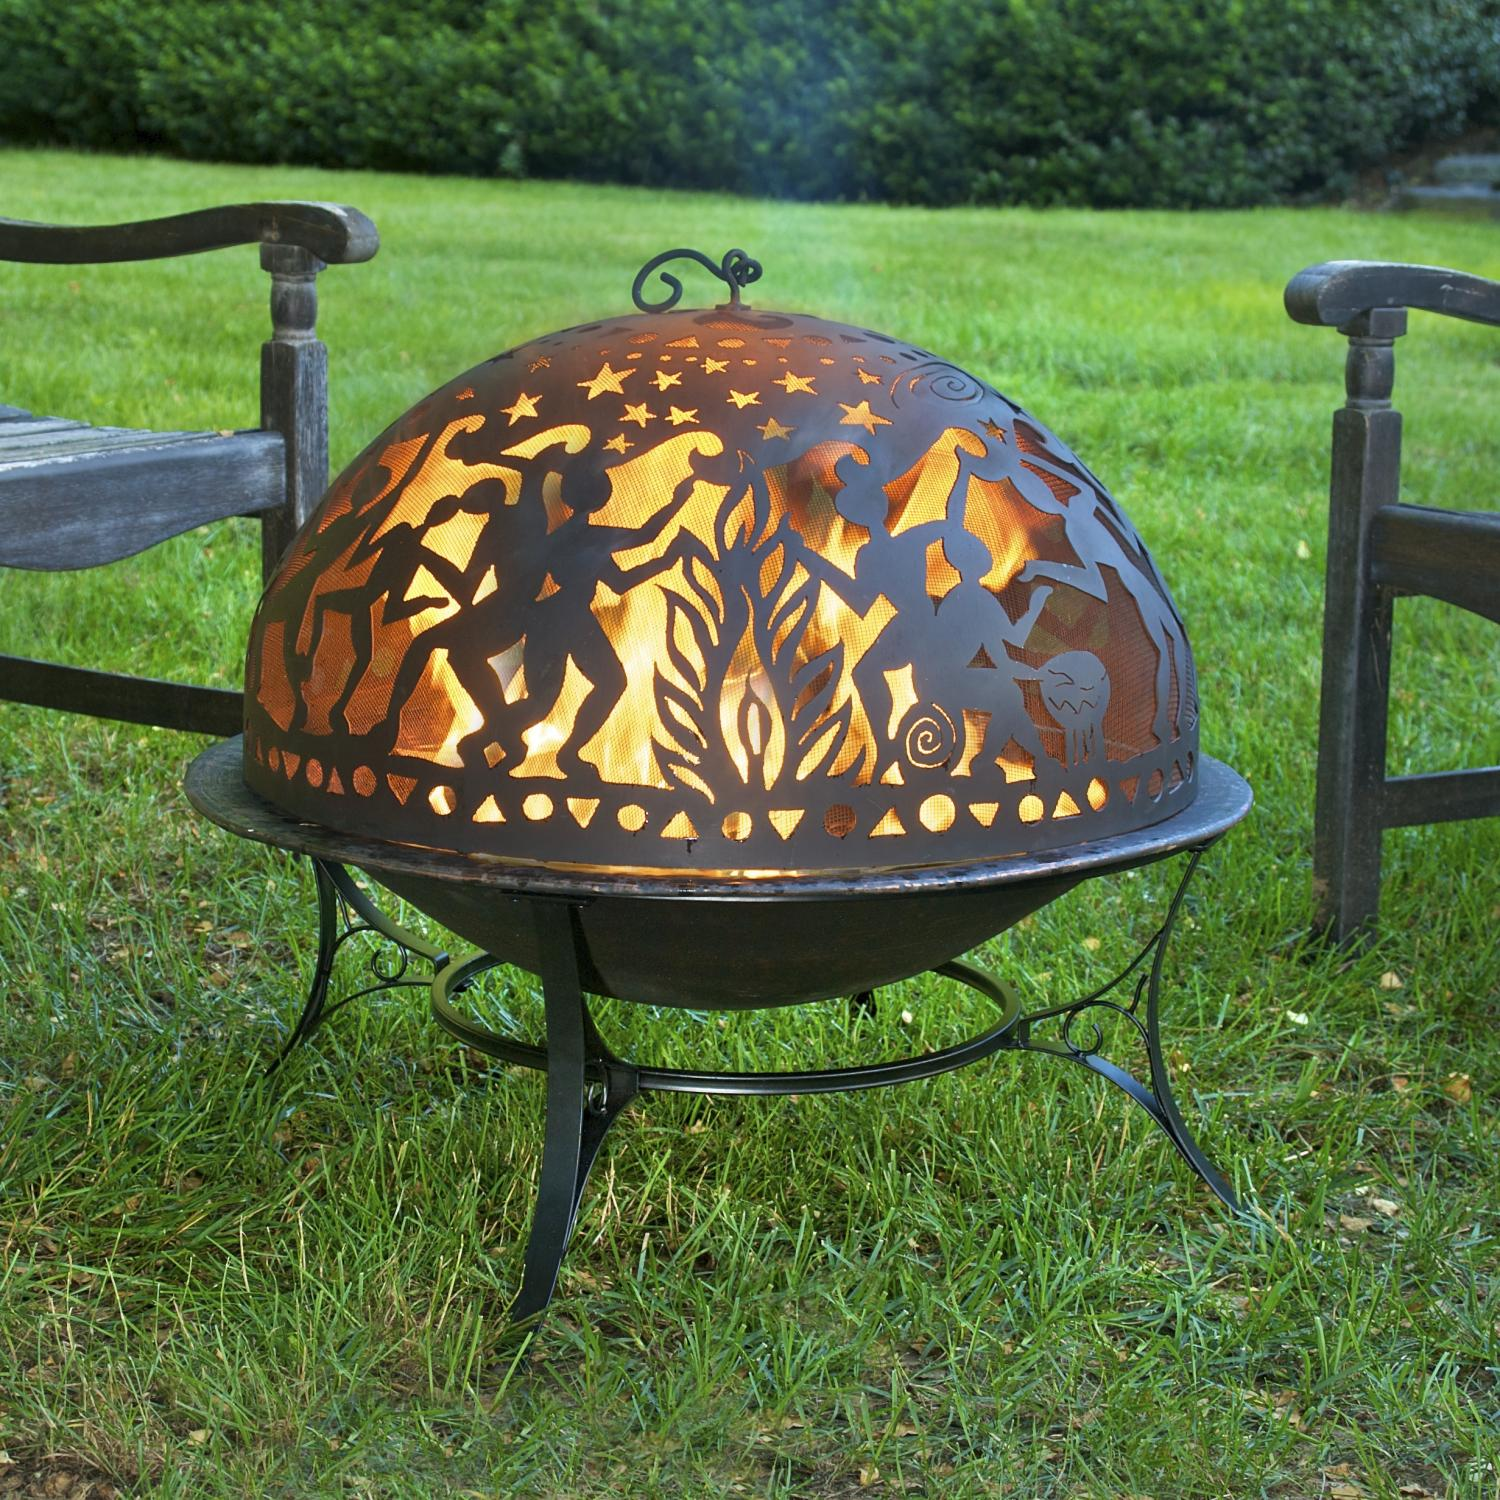 Good Directions Full Moon Party 30 Inch Wood Burning Fire Pit Ultimate Patio Fire Pit Sets Wood Burning Fire Pit Outdoor Fire Pit